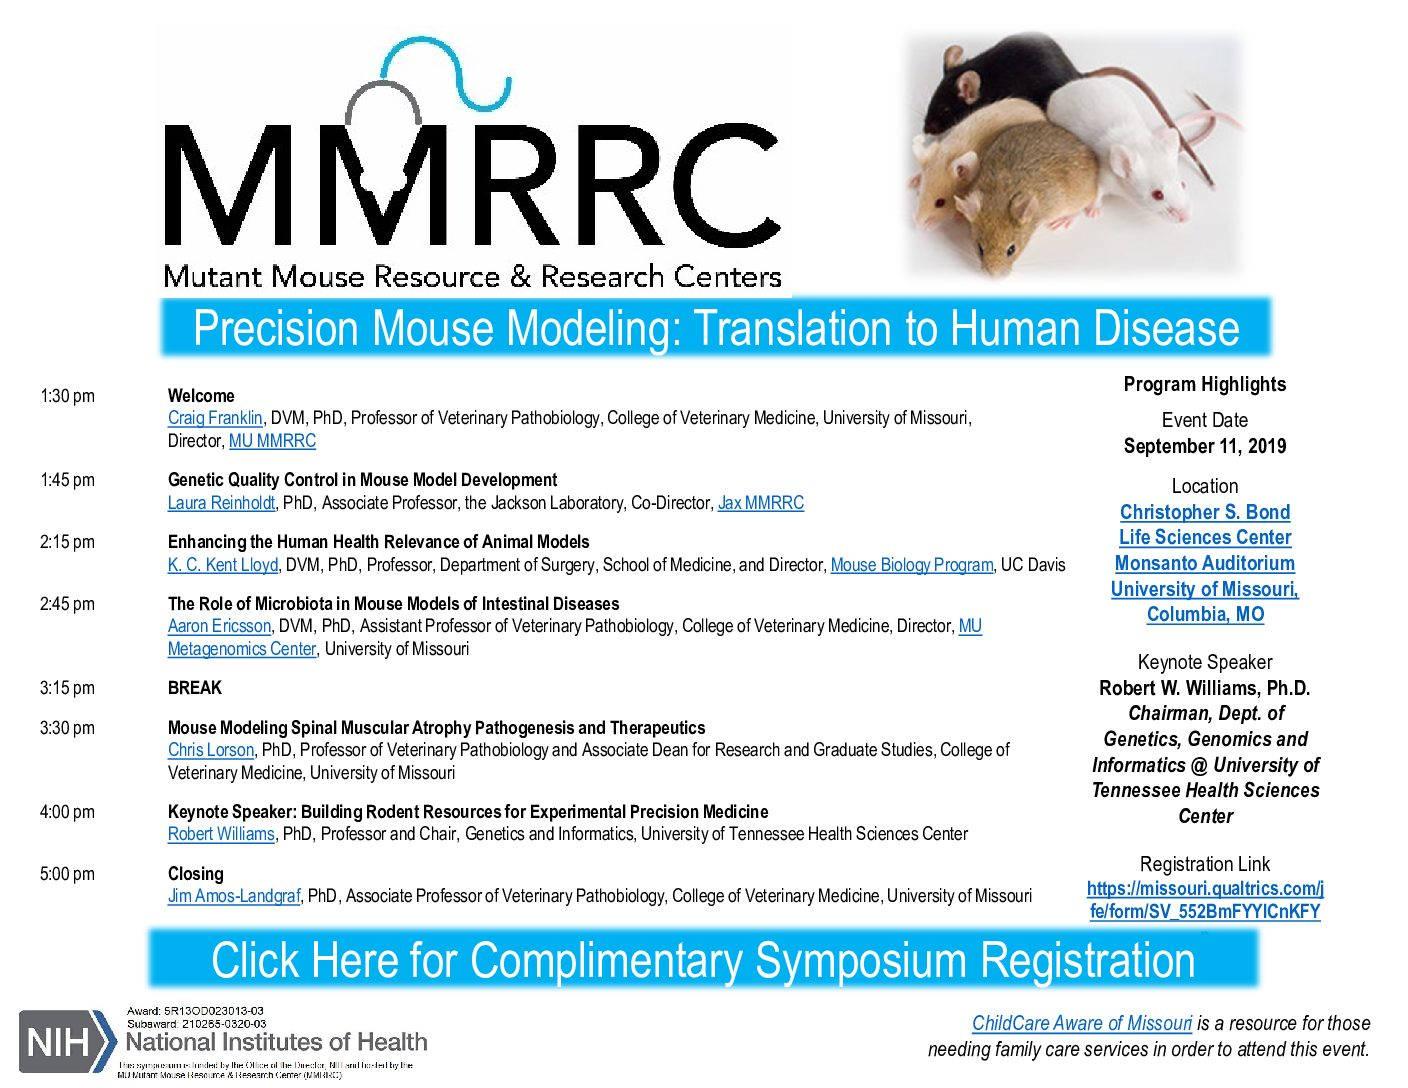 Mutant Mouse Resource & Research Centers Present > Precision Mouse Modeling: Translation to Human Disease